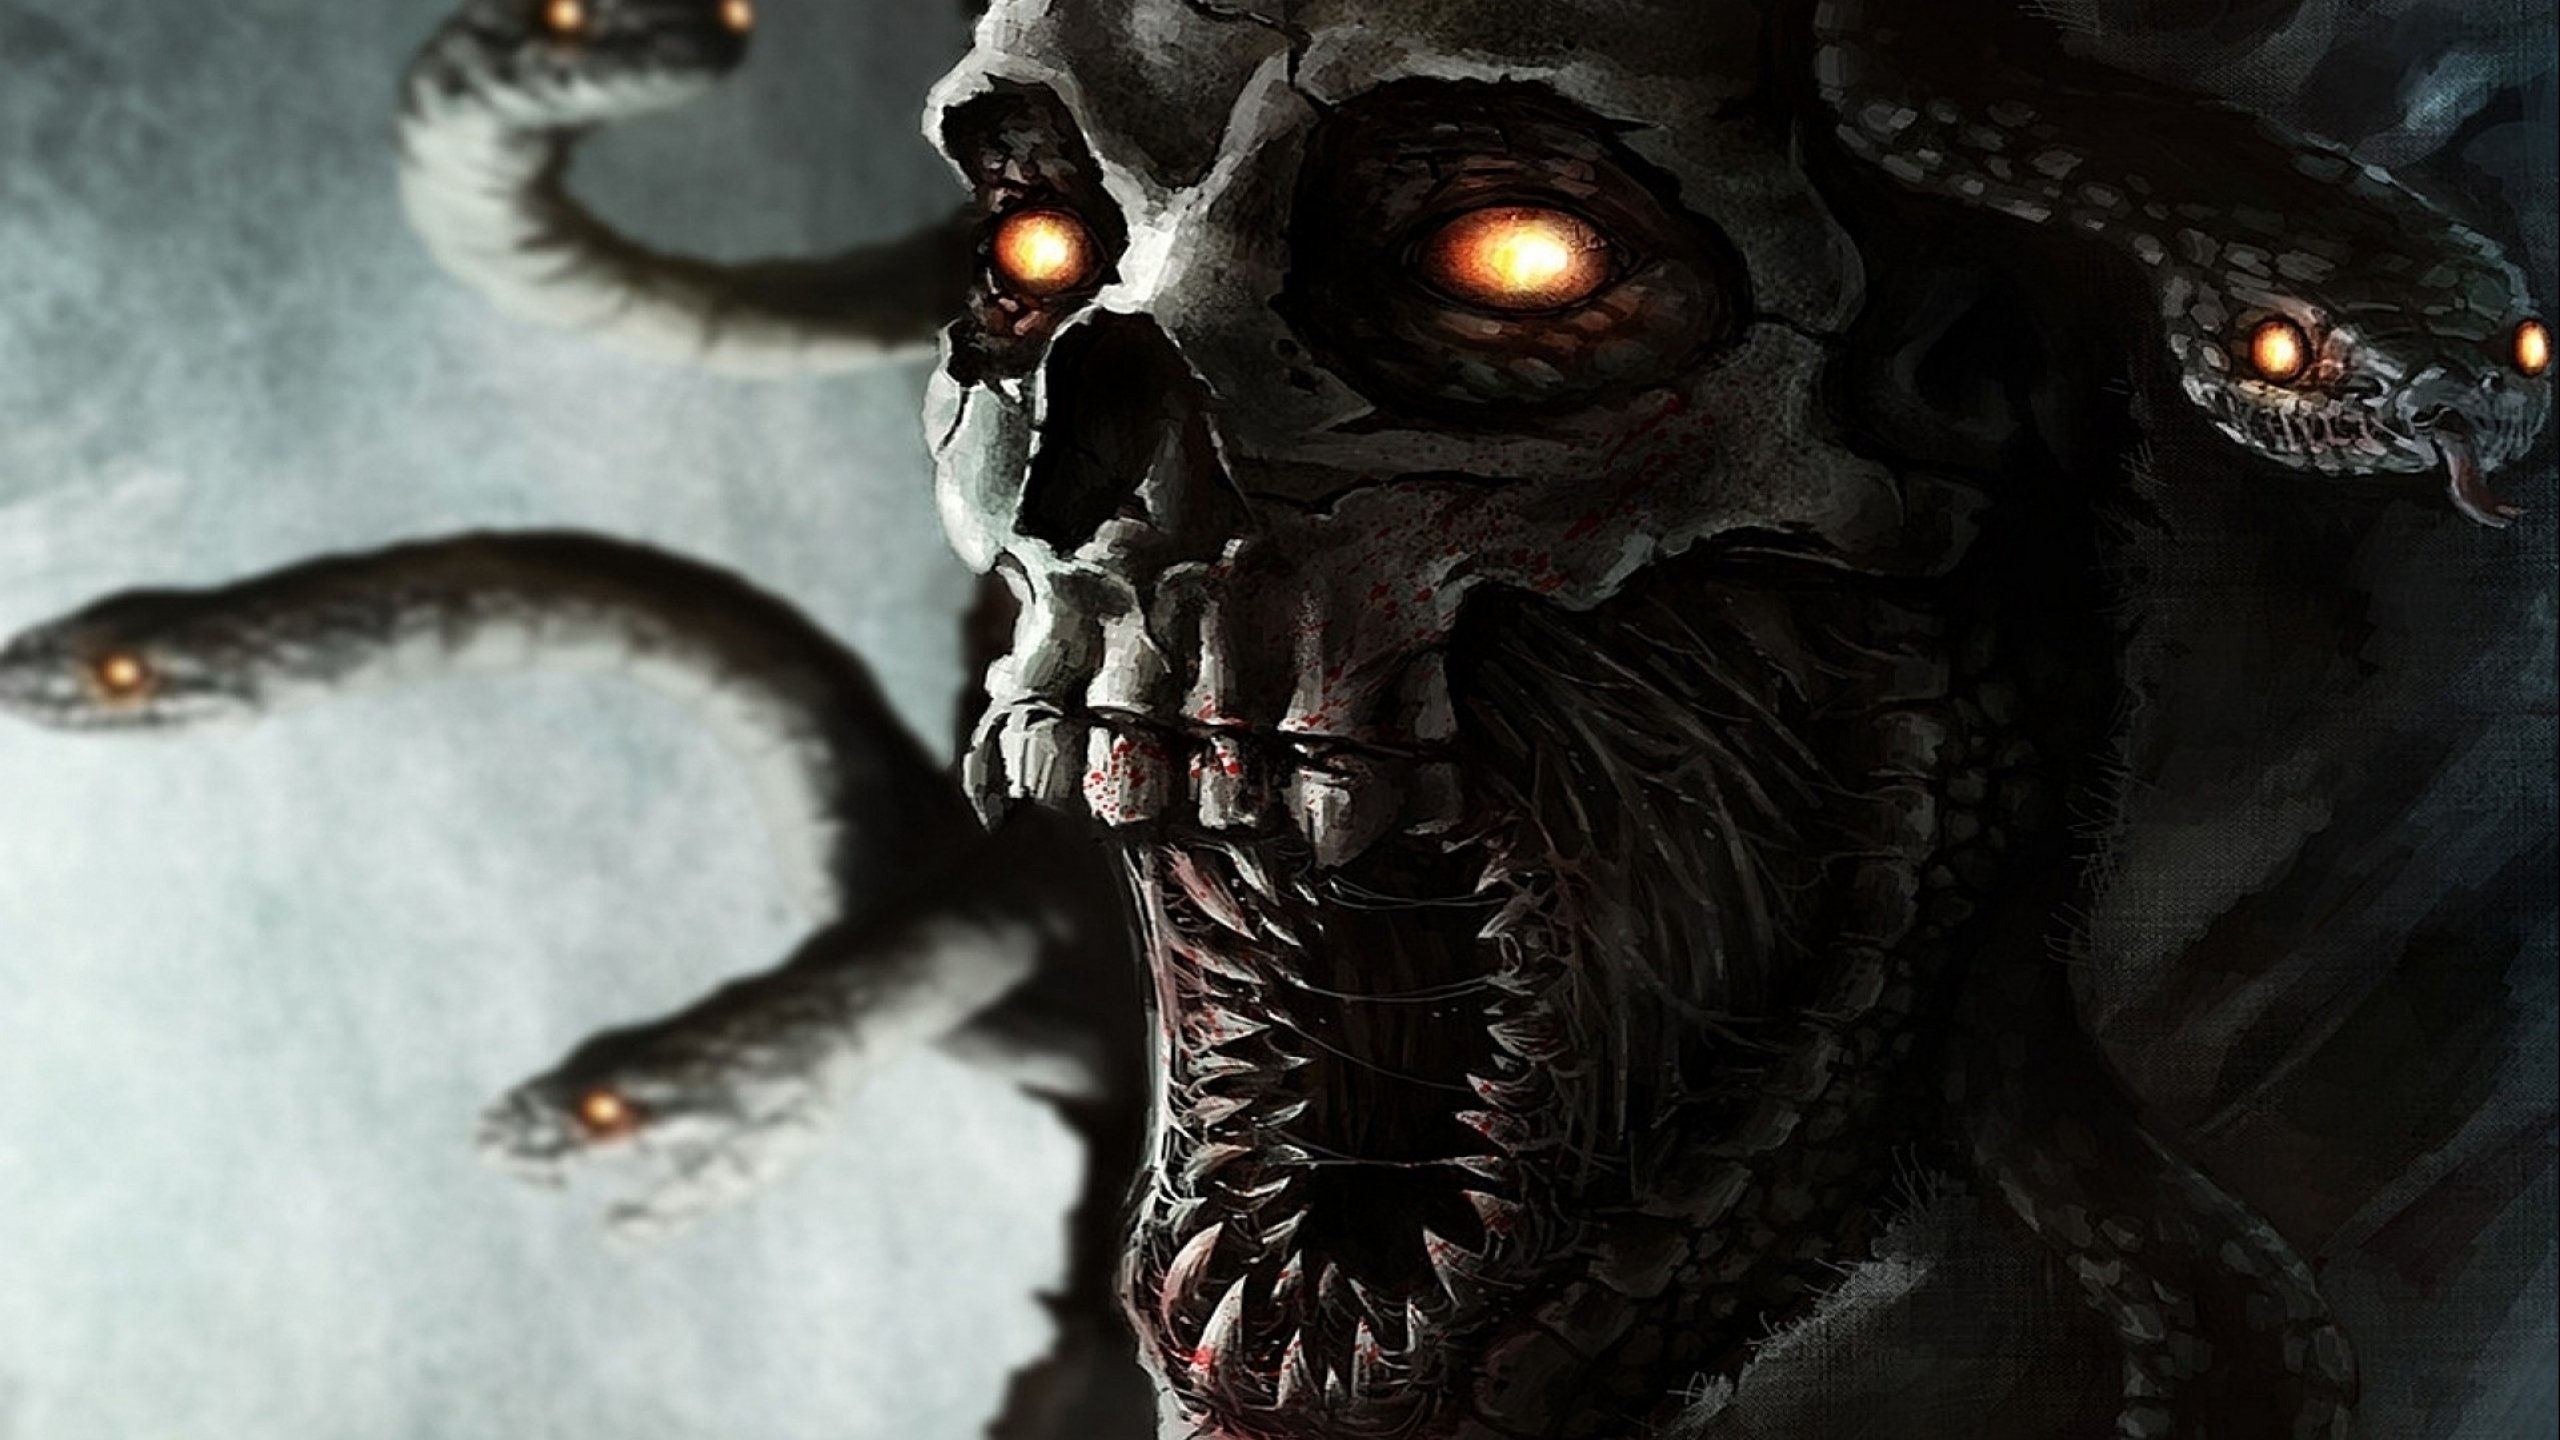 80+ Scary Evil Wallpapers Idea for PC